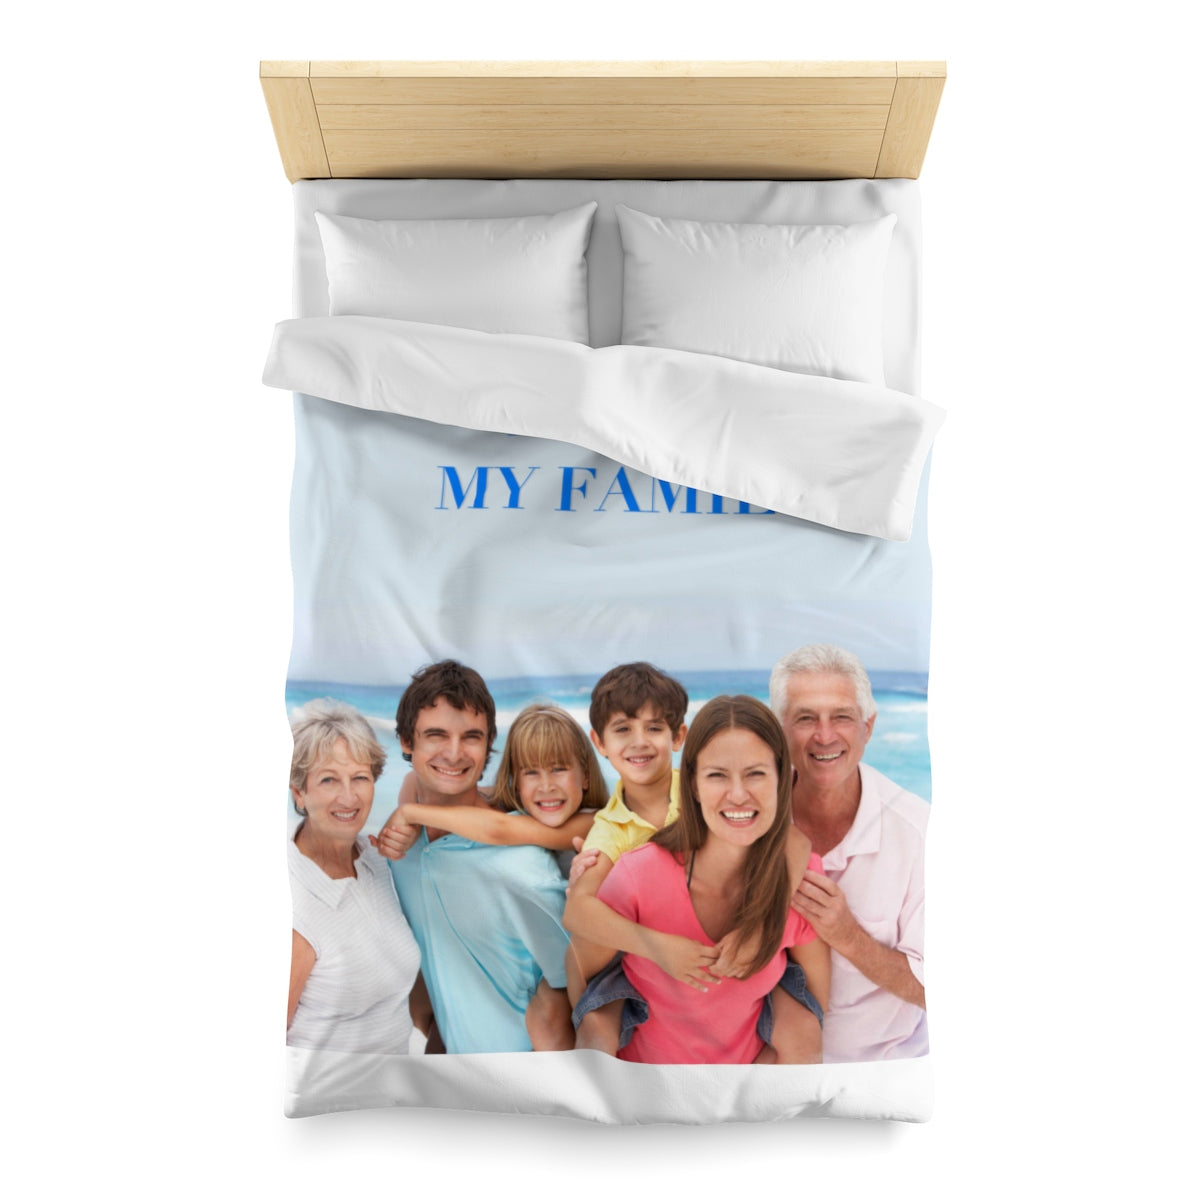 Personalize with your photo Bedding Microfiber Duvet Cover ( Only Bedding cover)